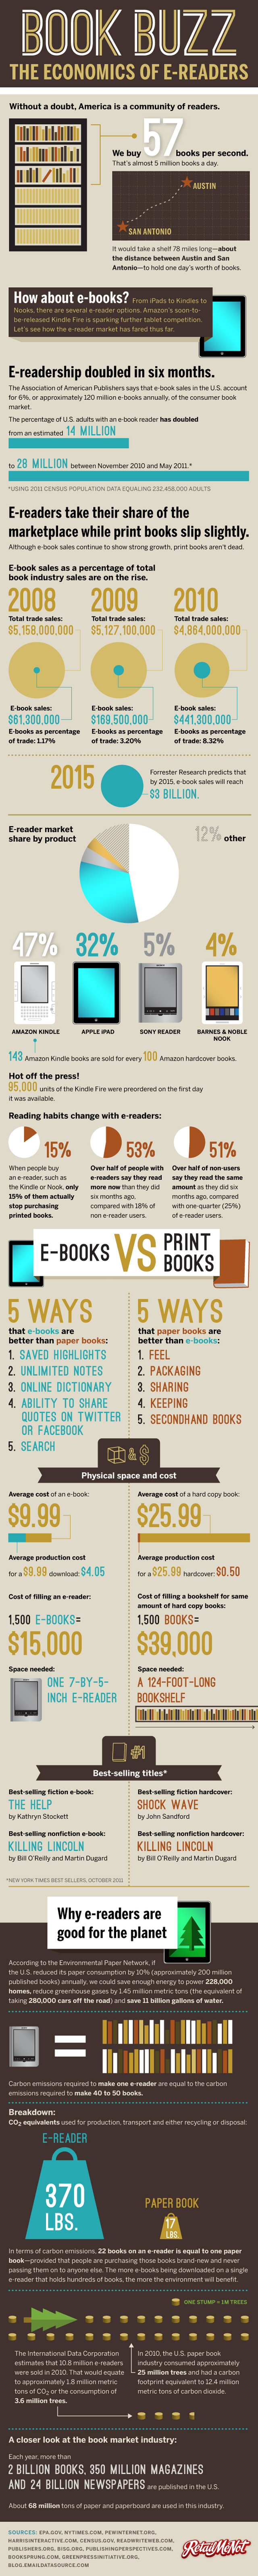 Traditional vs Digital Book Industry